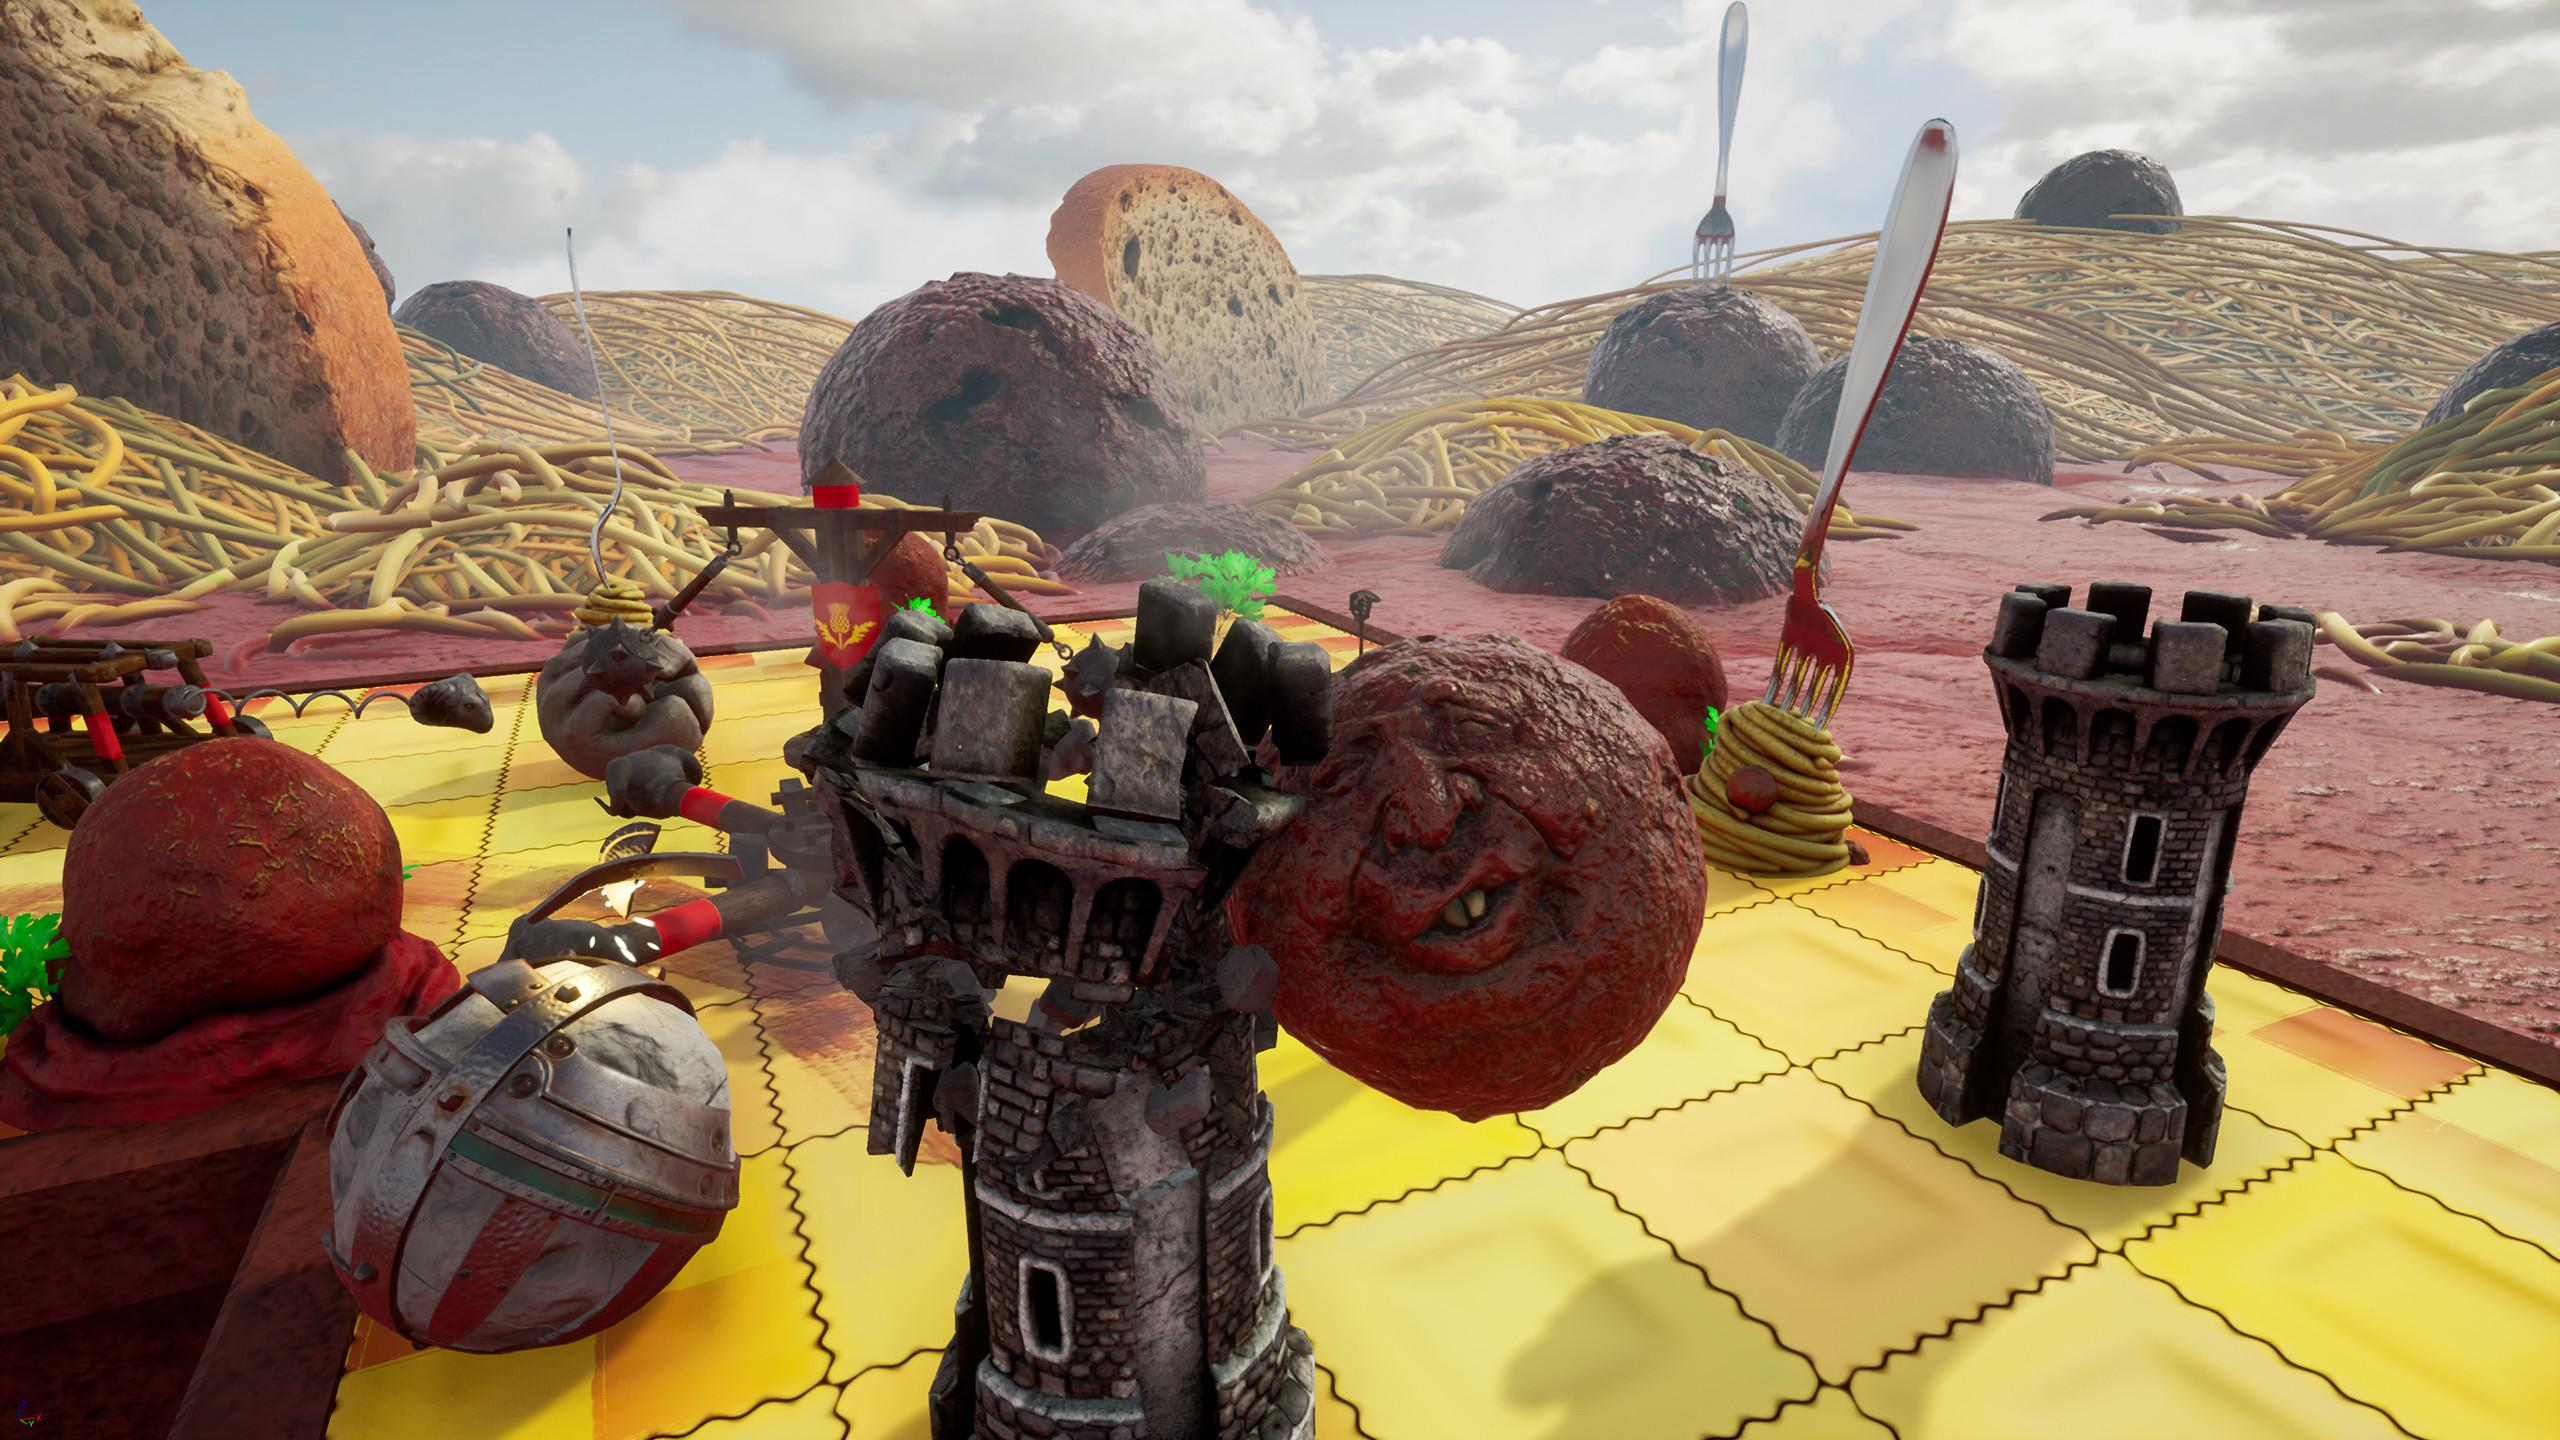 Rock of Ages is a hybrid of racing and tower defense games set in surreal world based off of medieval art